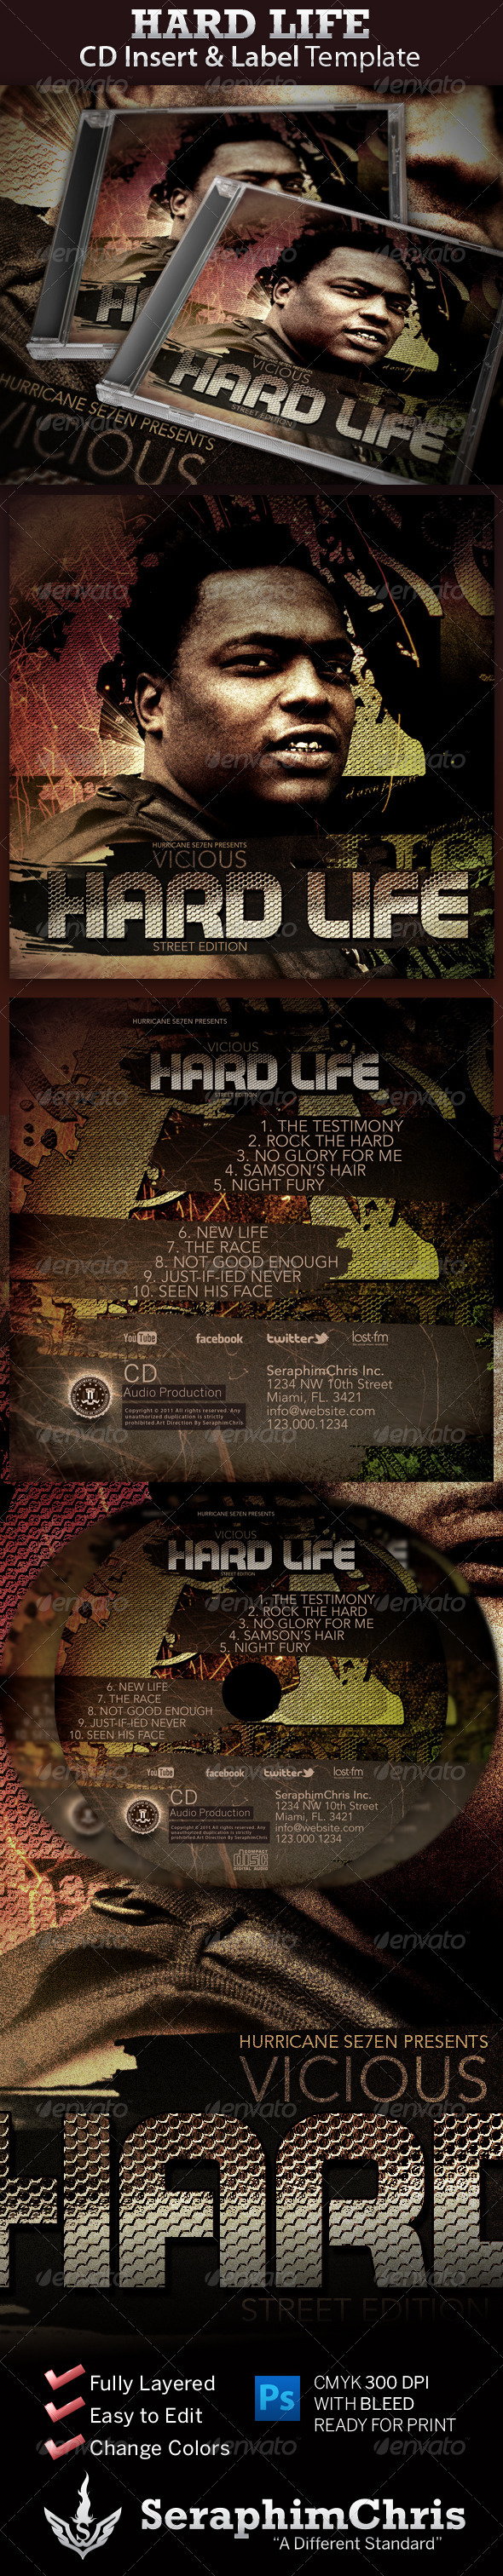 Hard Life CD Insert and Label - CD & DVD artwork Print Templates